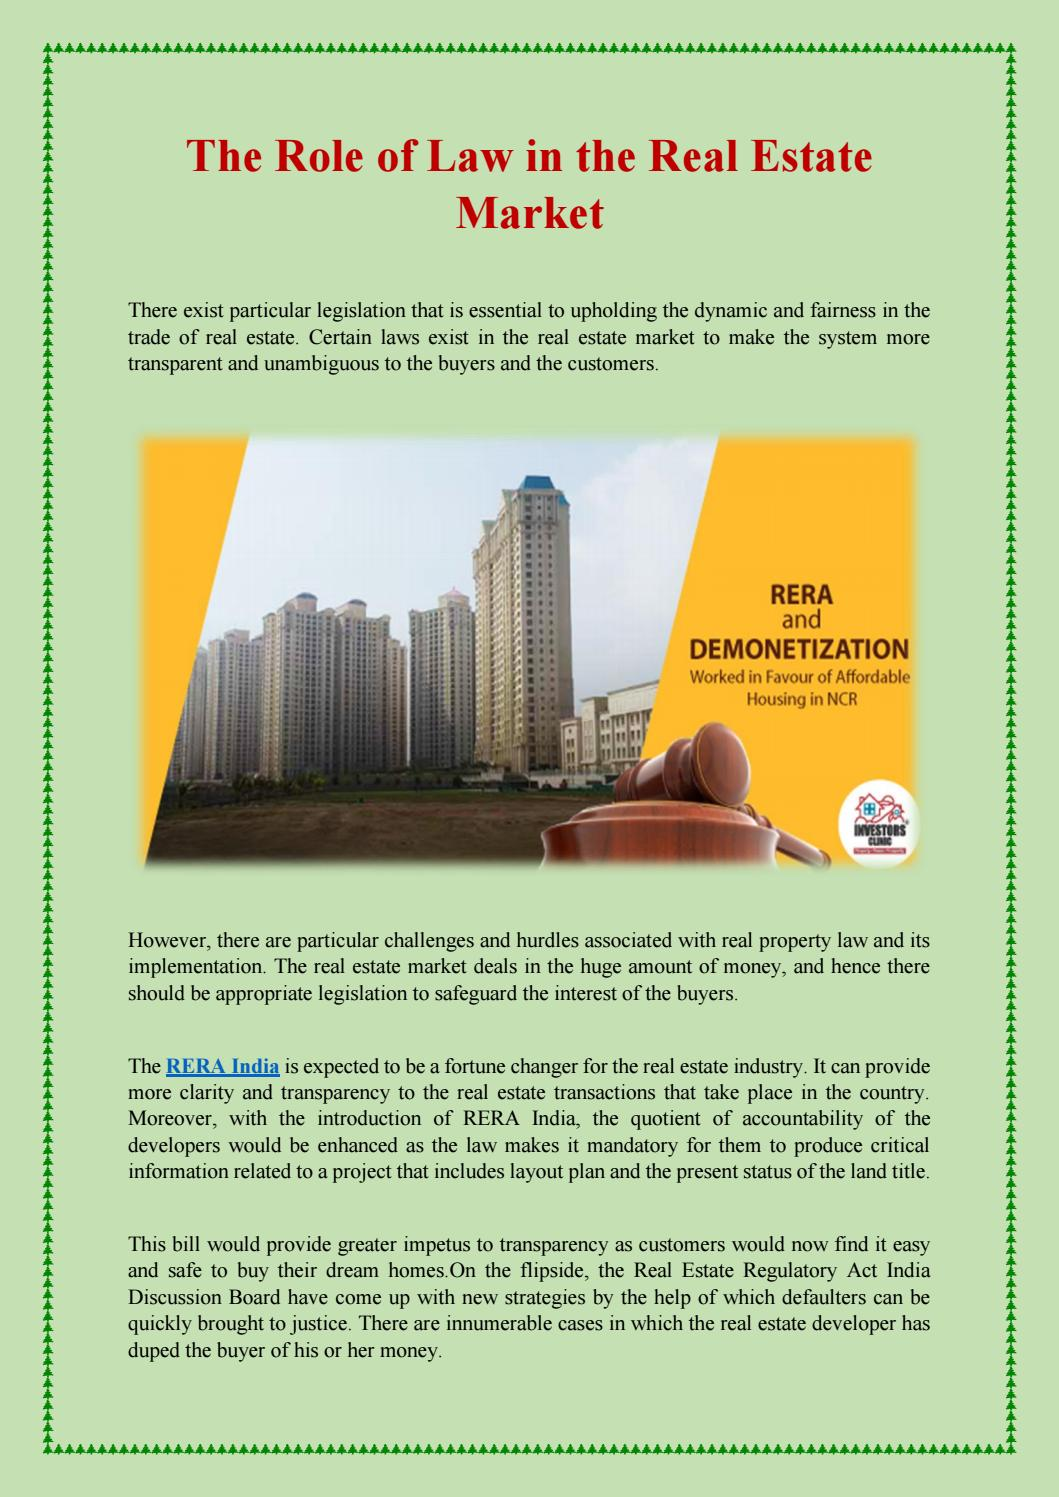 The role of law in the real estate market by Anushka Chaudhary - issuu